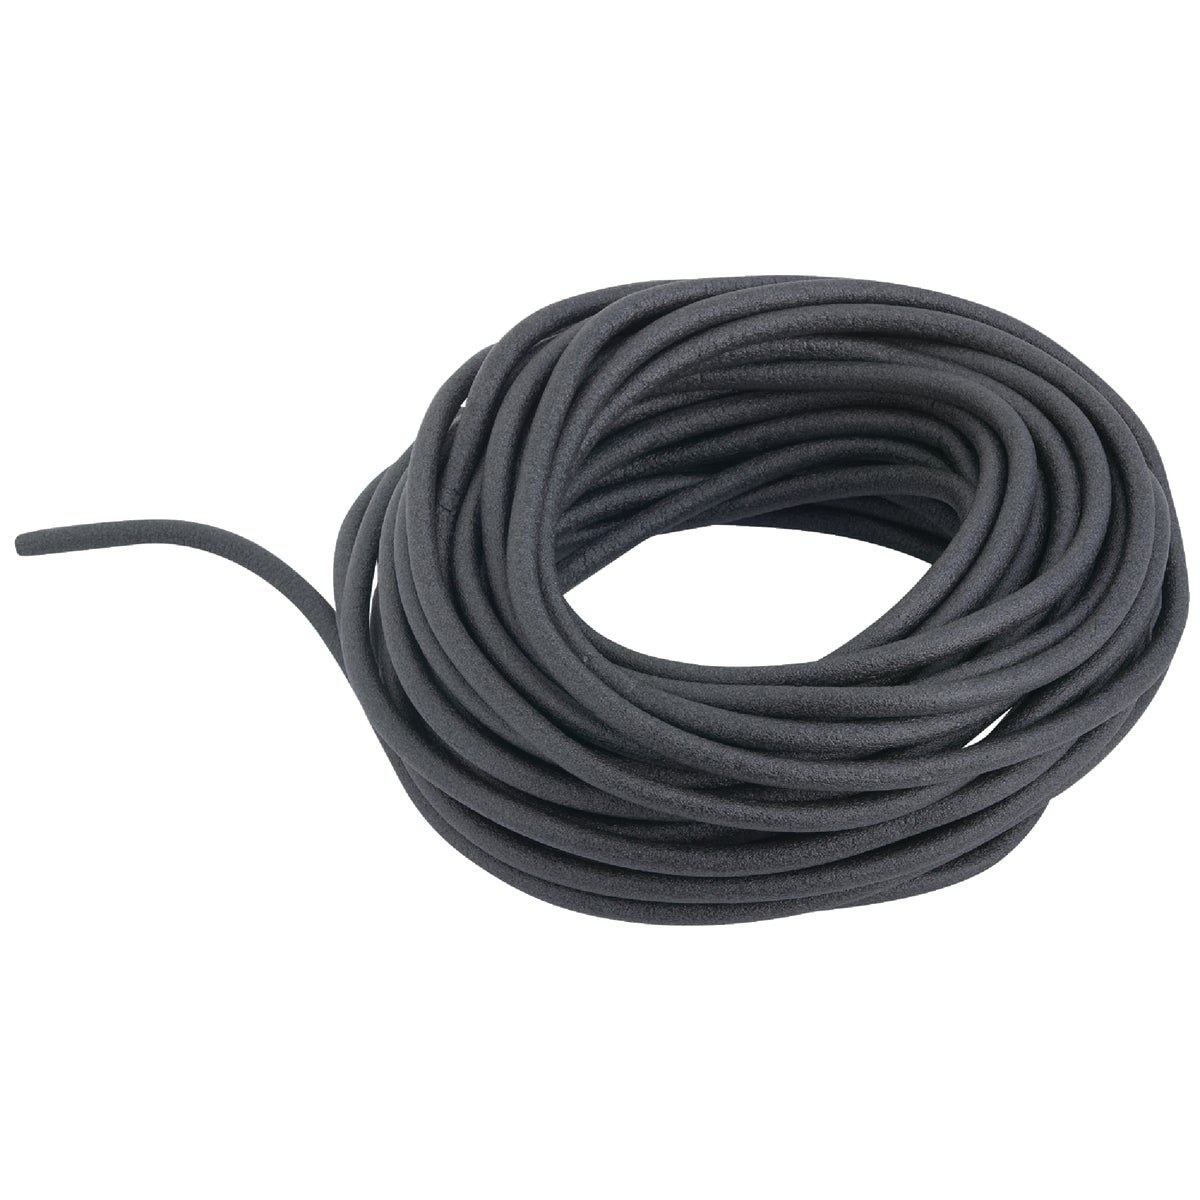 "1/2""X100' FILLER ROPE - 30501 by Sashco Sealants Inc"